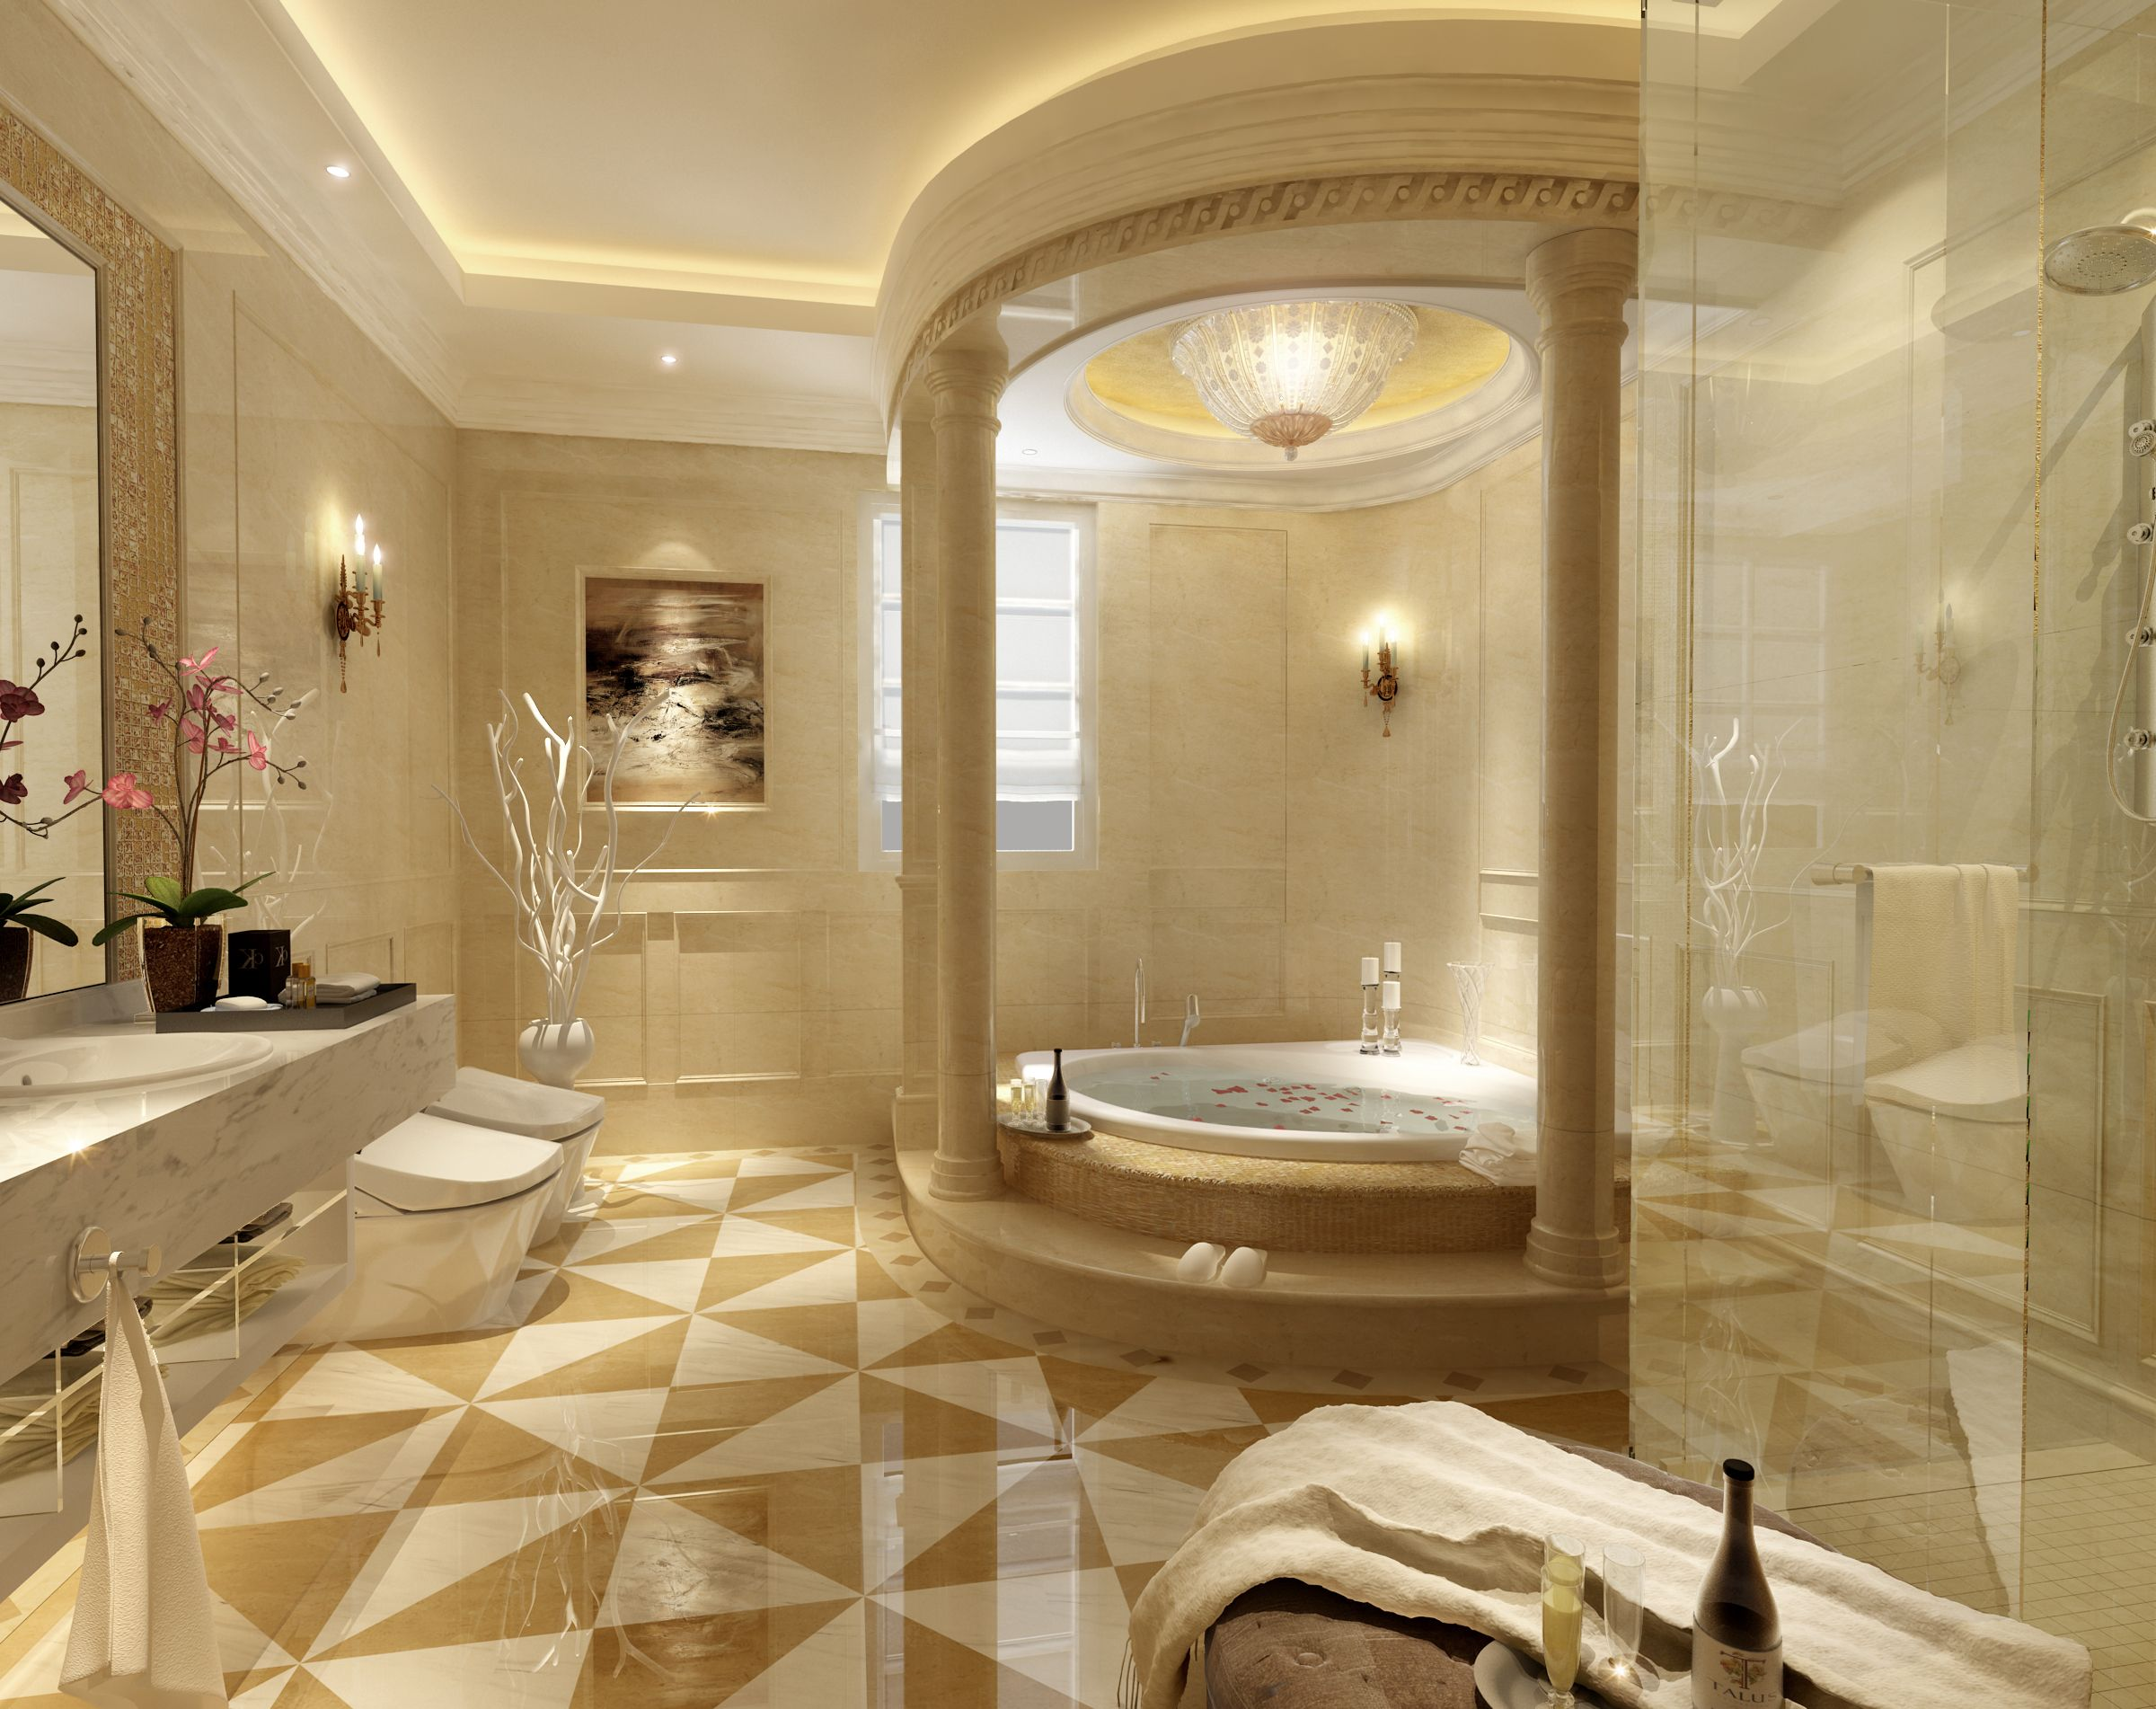 Fancy Bathrooms 55 Amazing Luxury Bathroom Designs Relax And Enjoy A